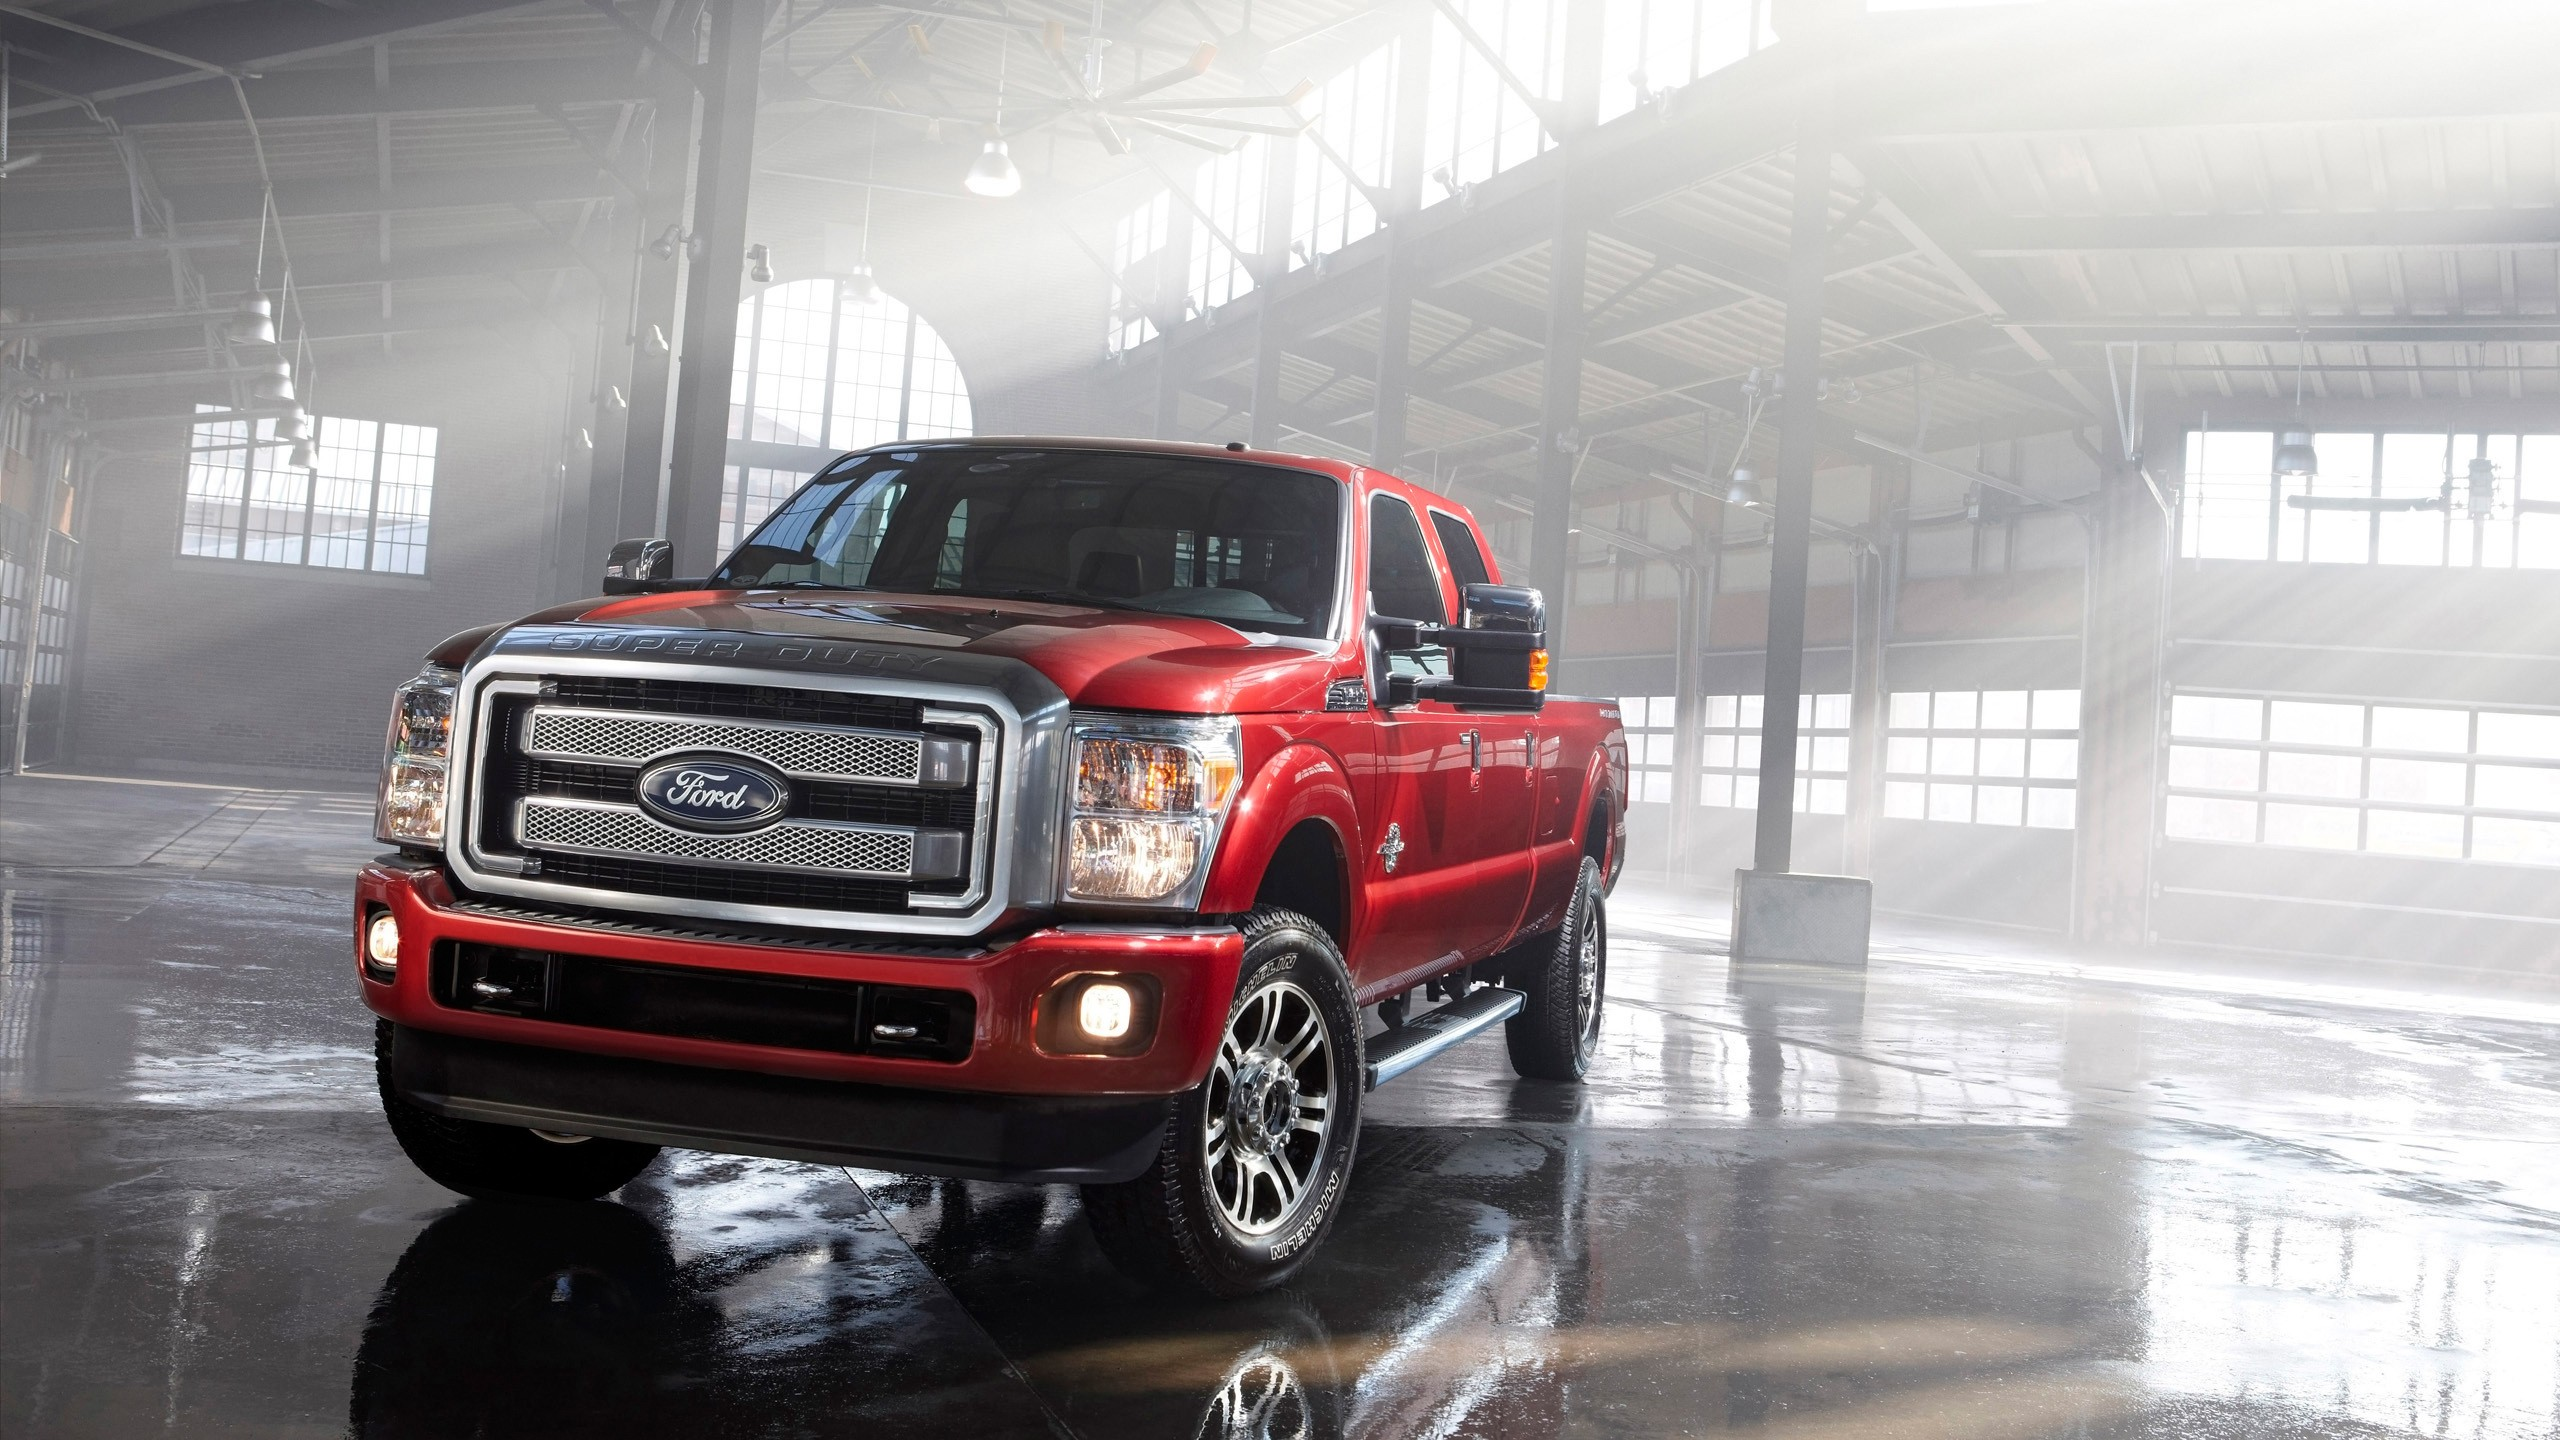 2014 ford f series super duty wallpaper hd car wallpapers - 2014 Ford F Series Super Duty